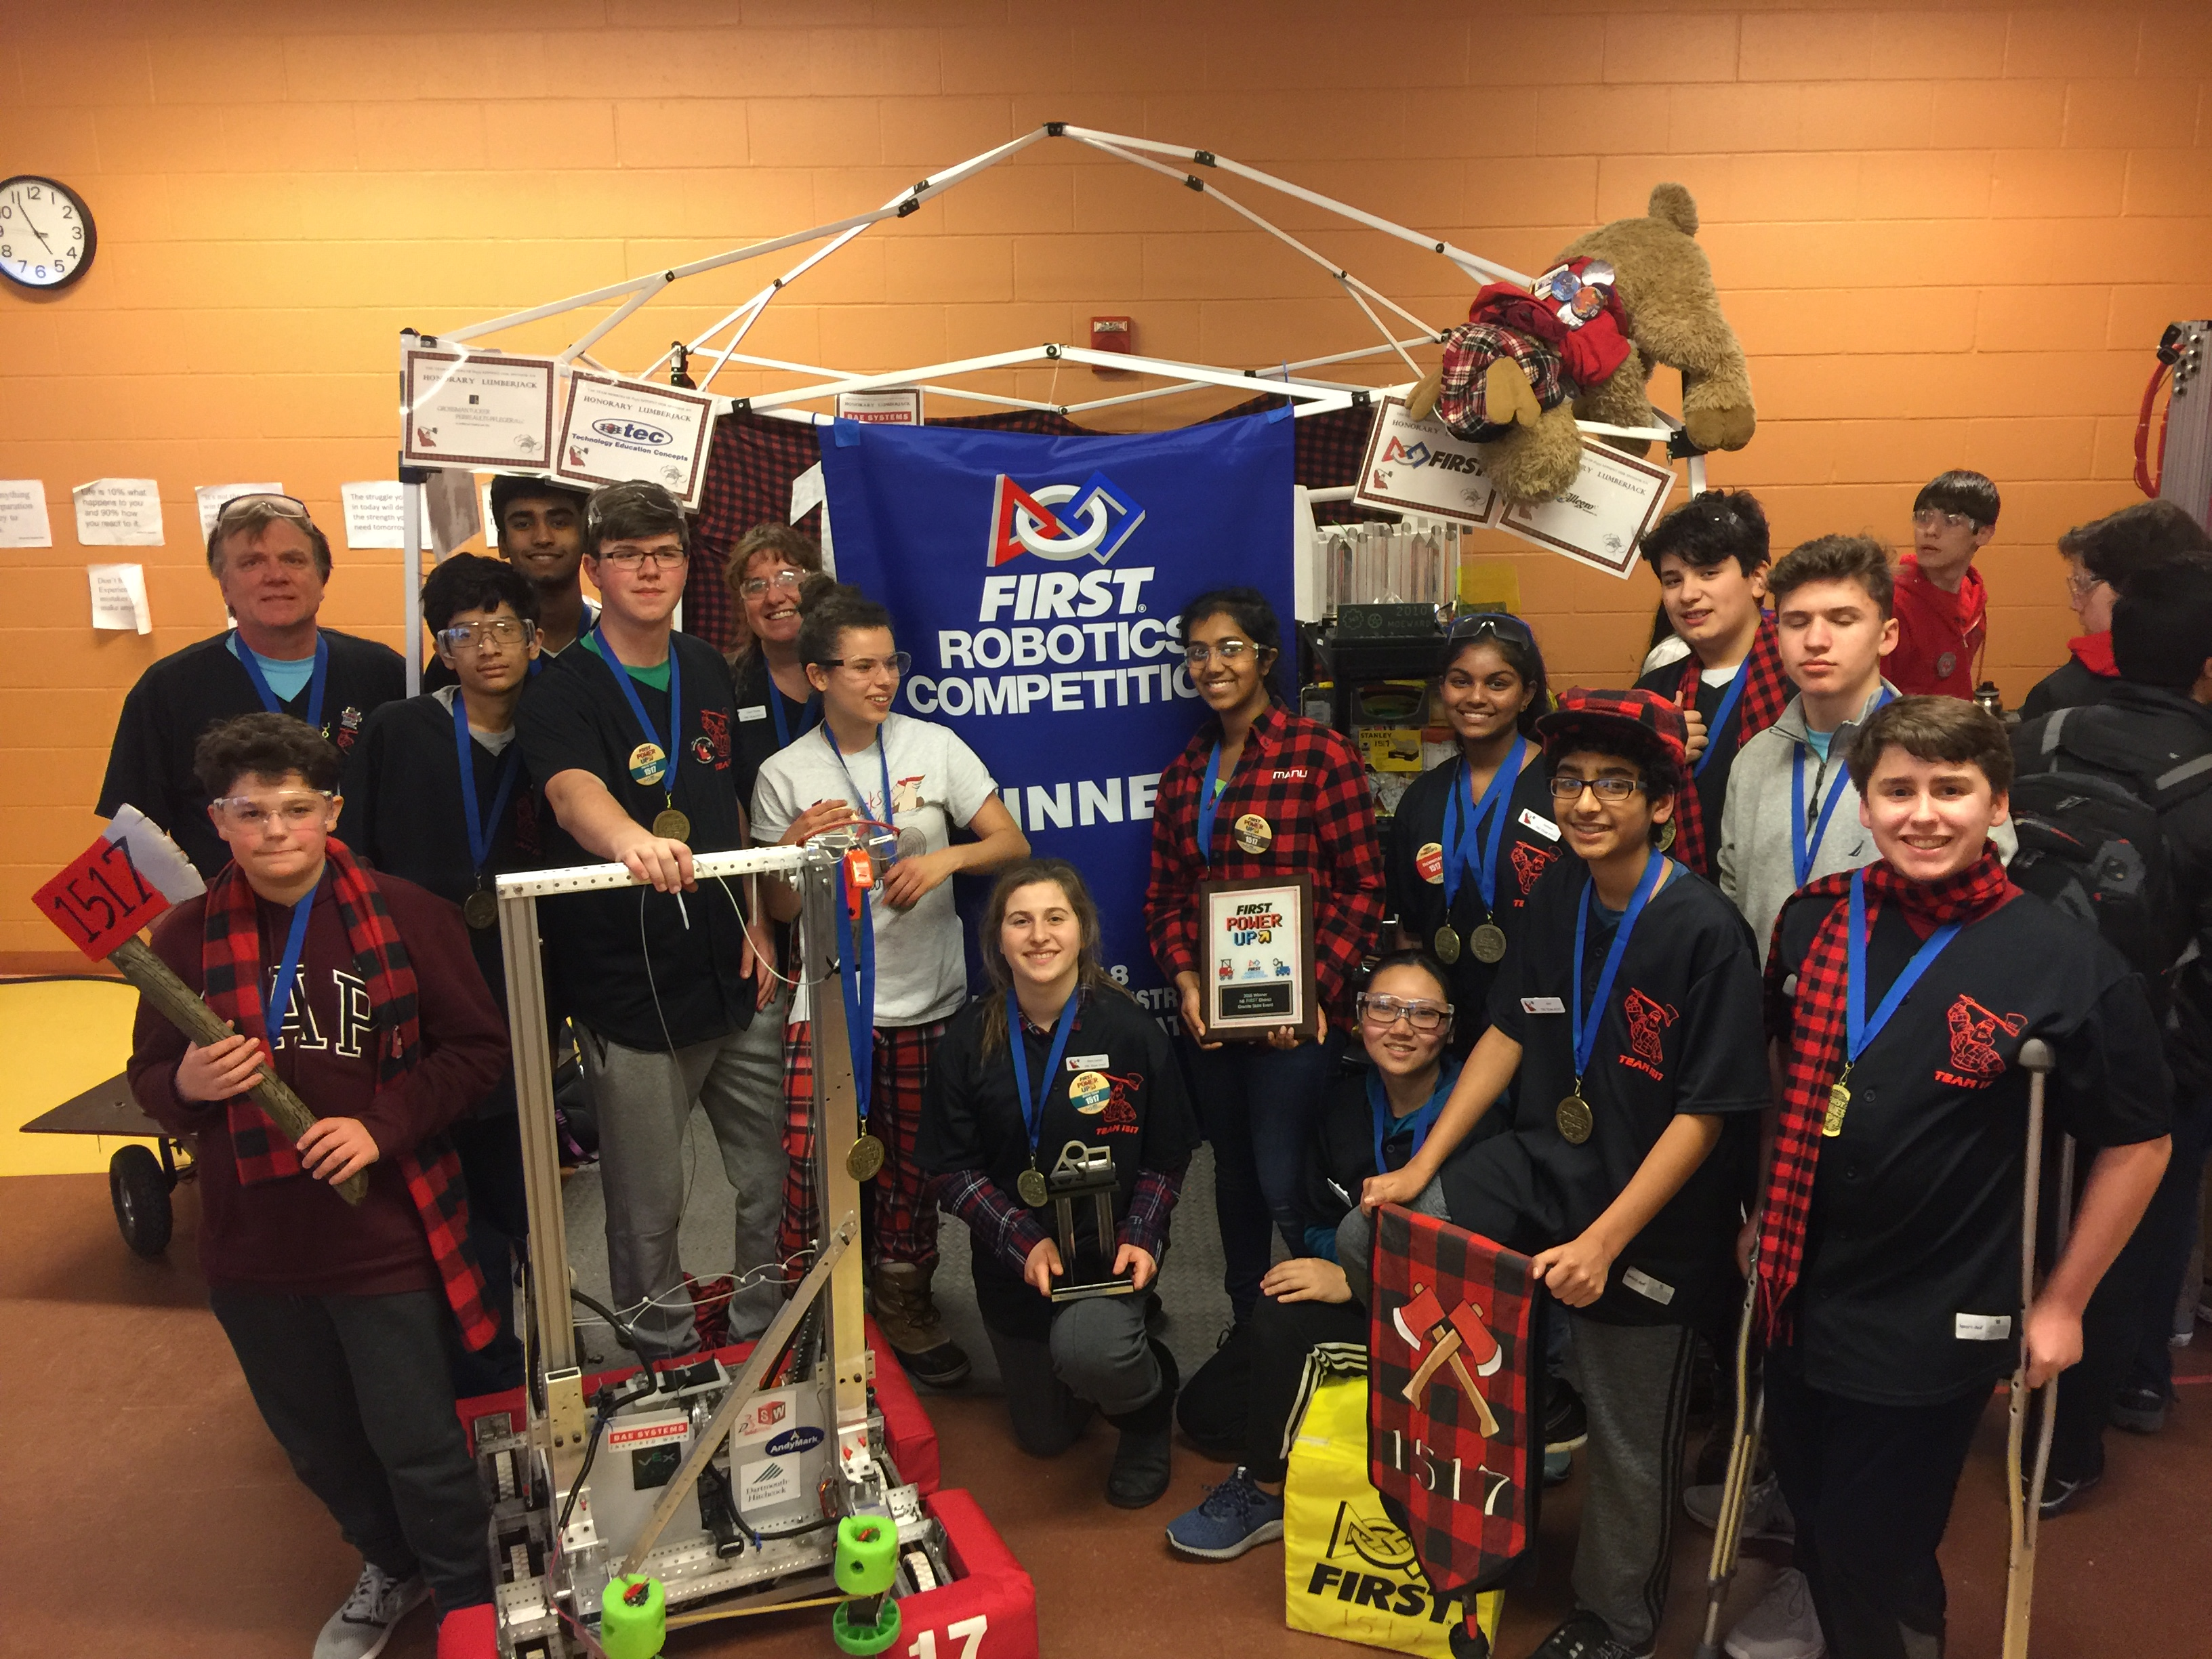 Bishop Brady High School Frc Robotics Team 1517 Wins